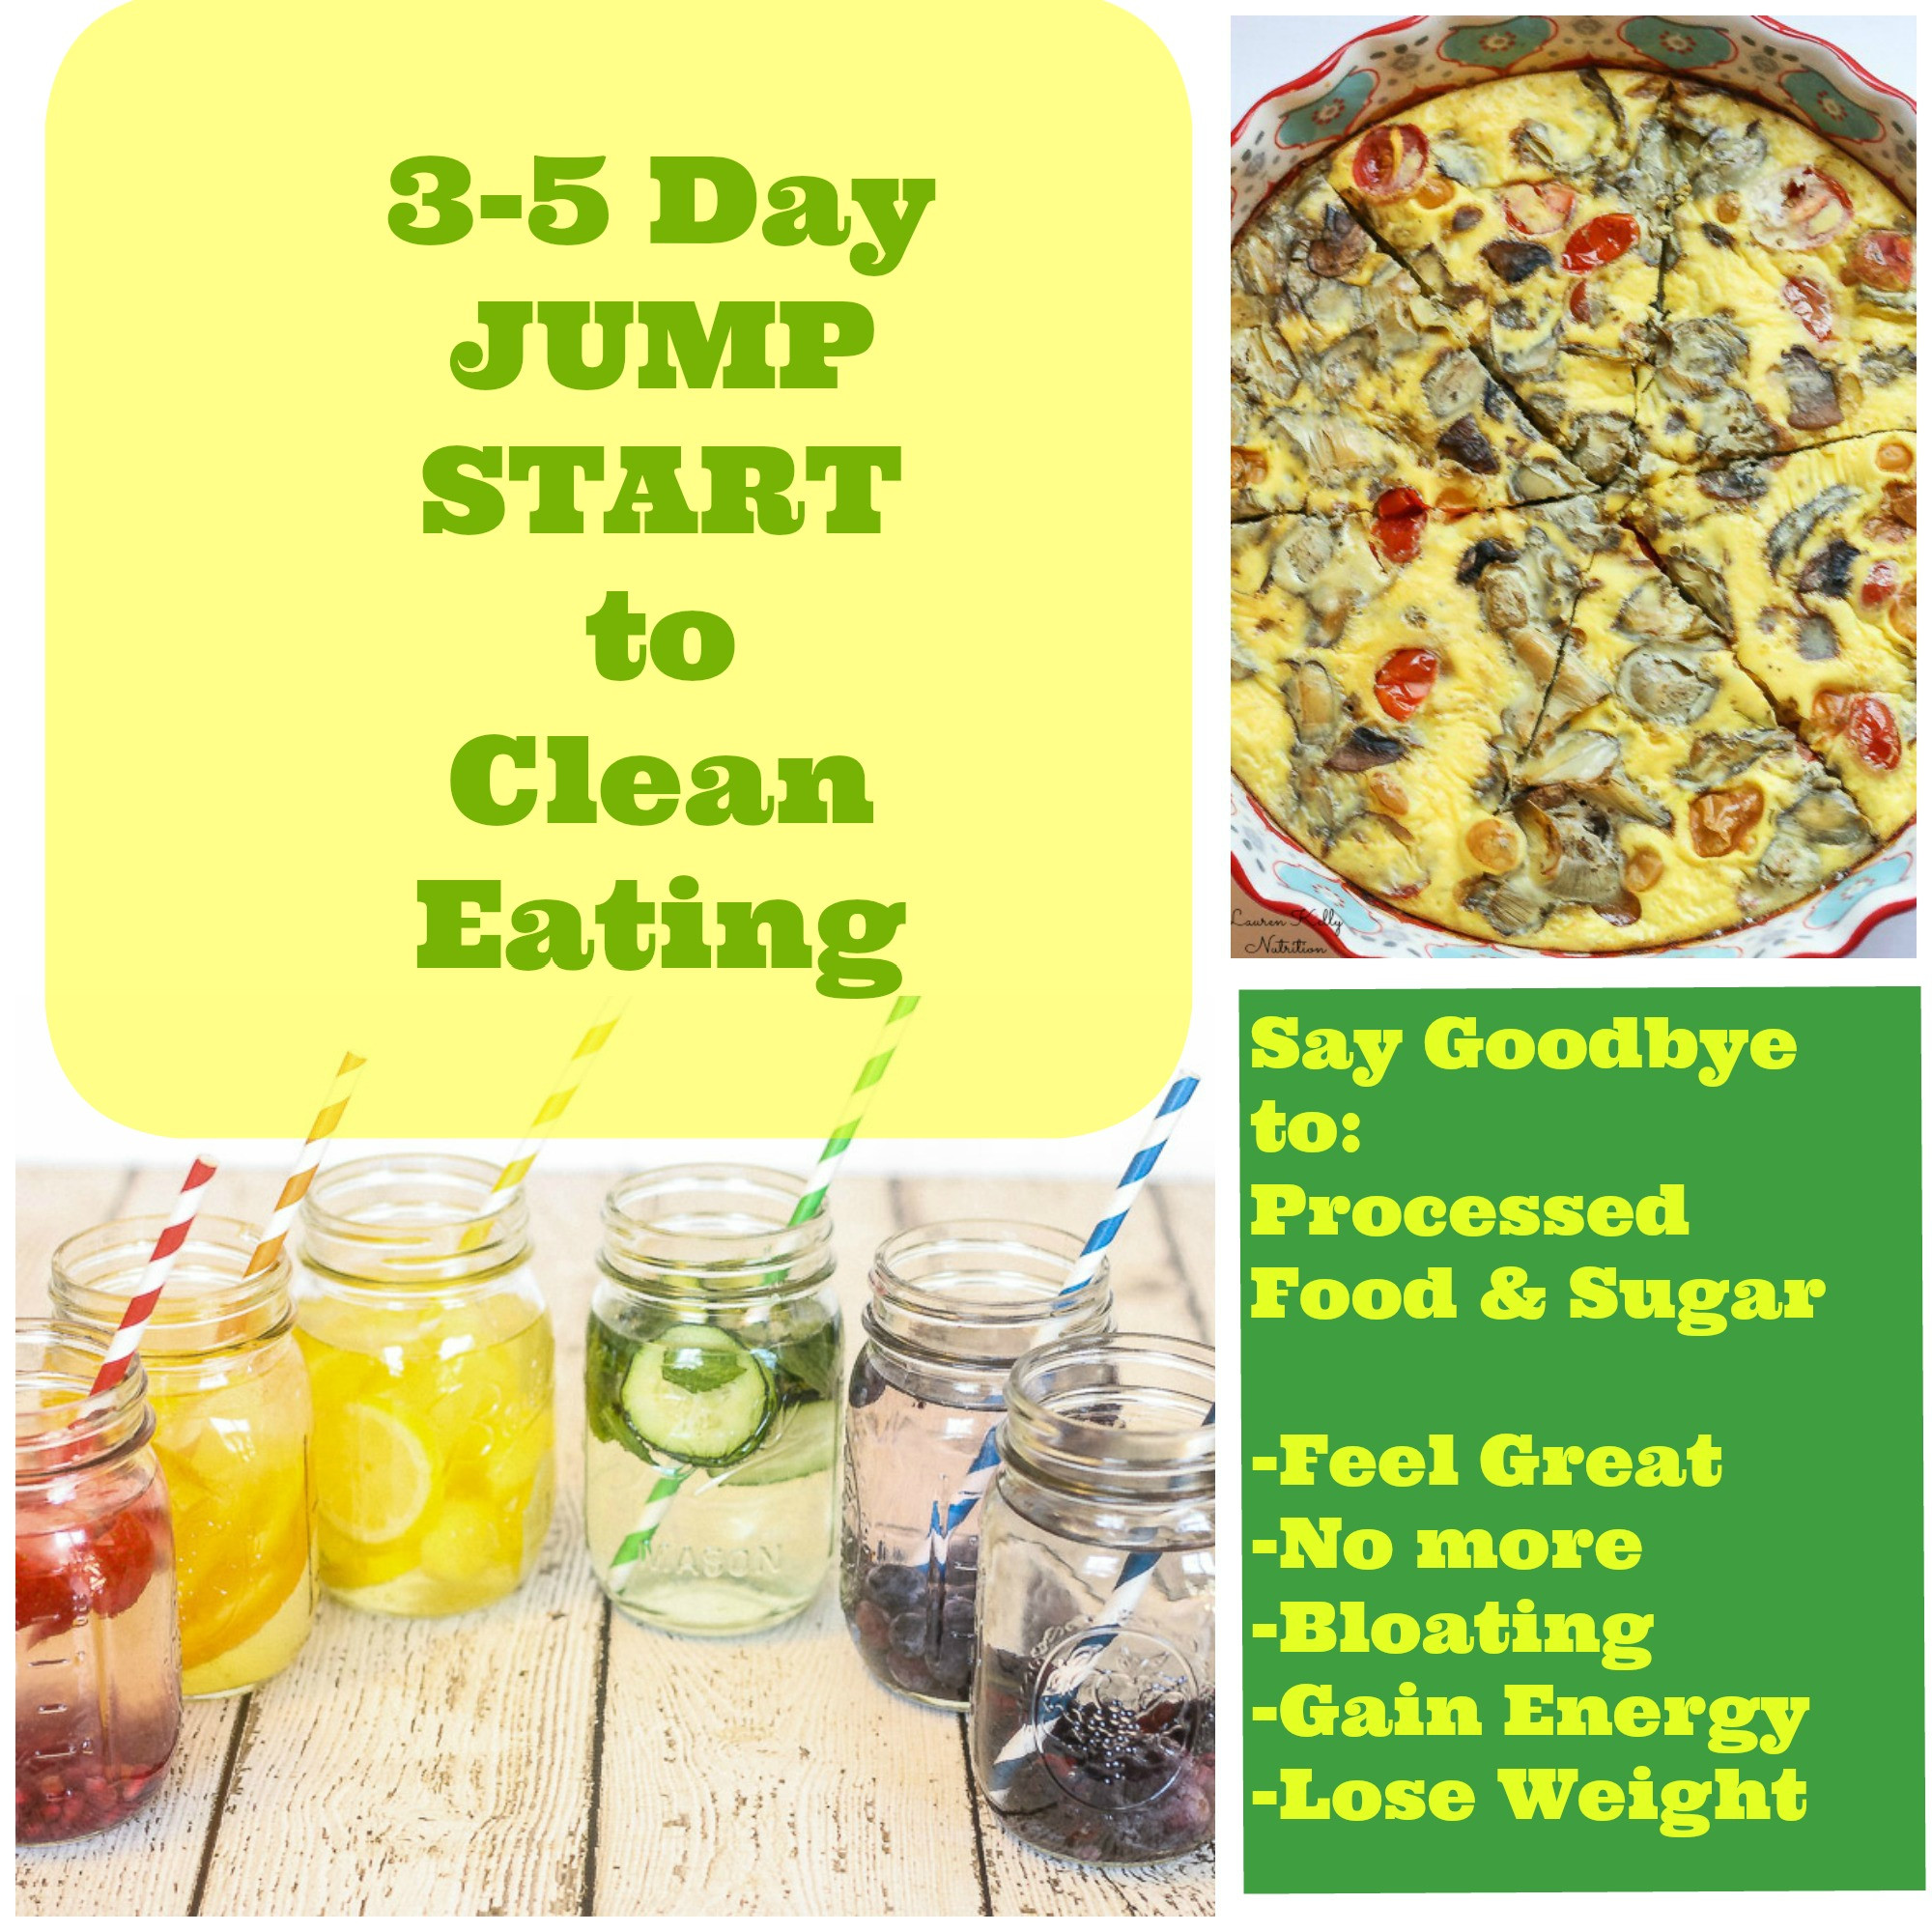 Clean Eating Foods For Weight Loss  Three – Five Day Jump Start to Clean Eating and Grocery List